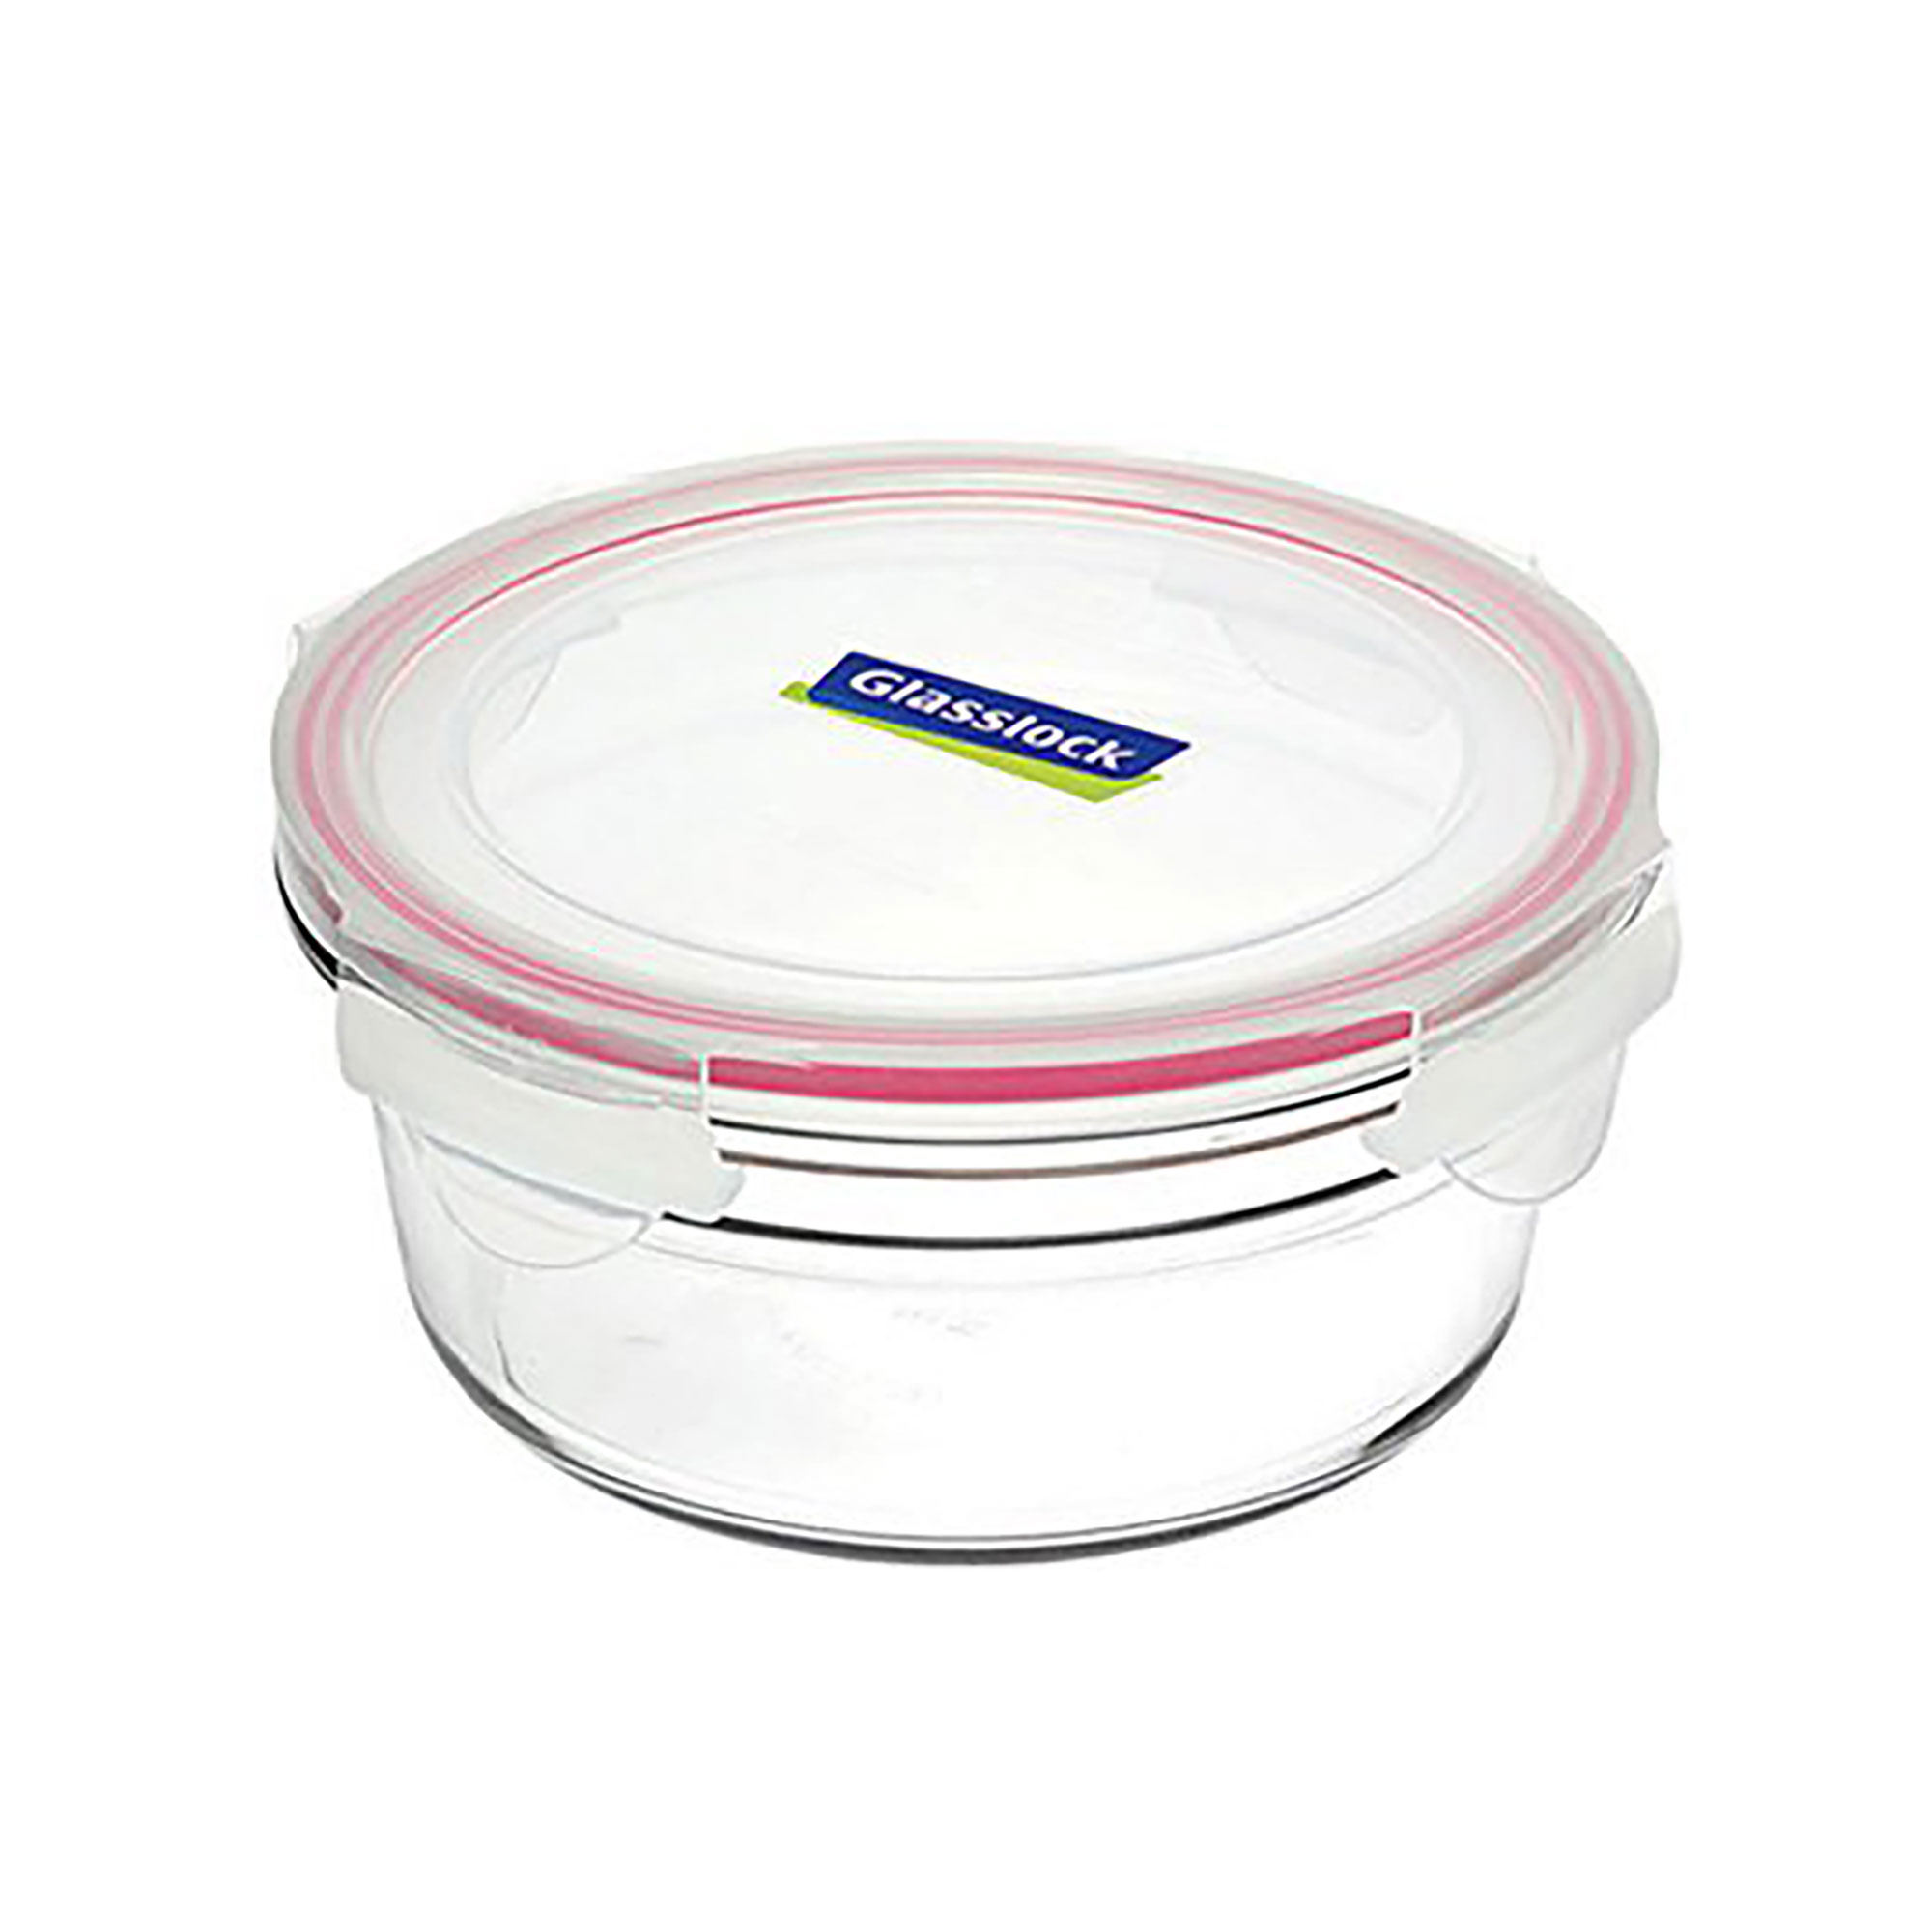 Glasslock Oven Safe Round Container 850ml